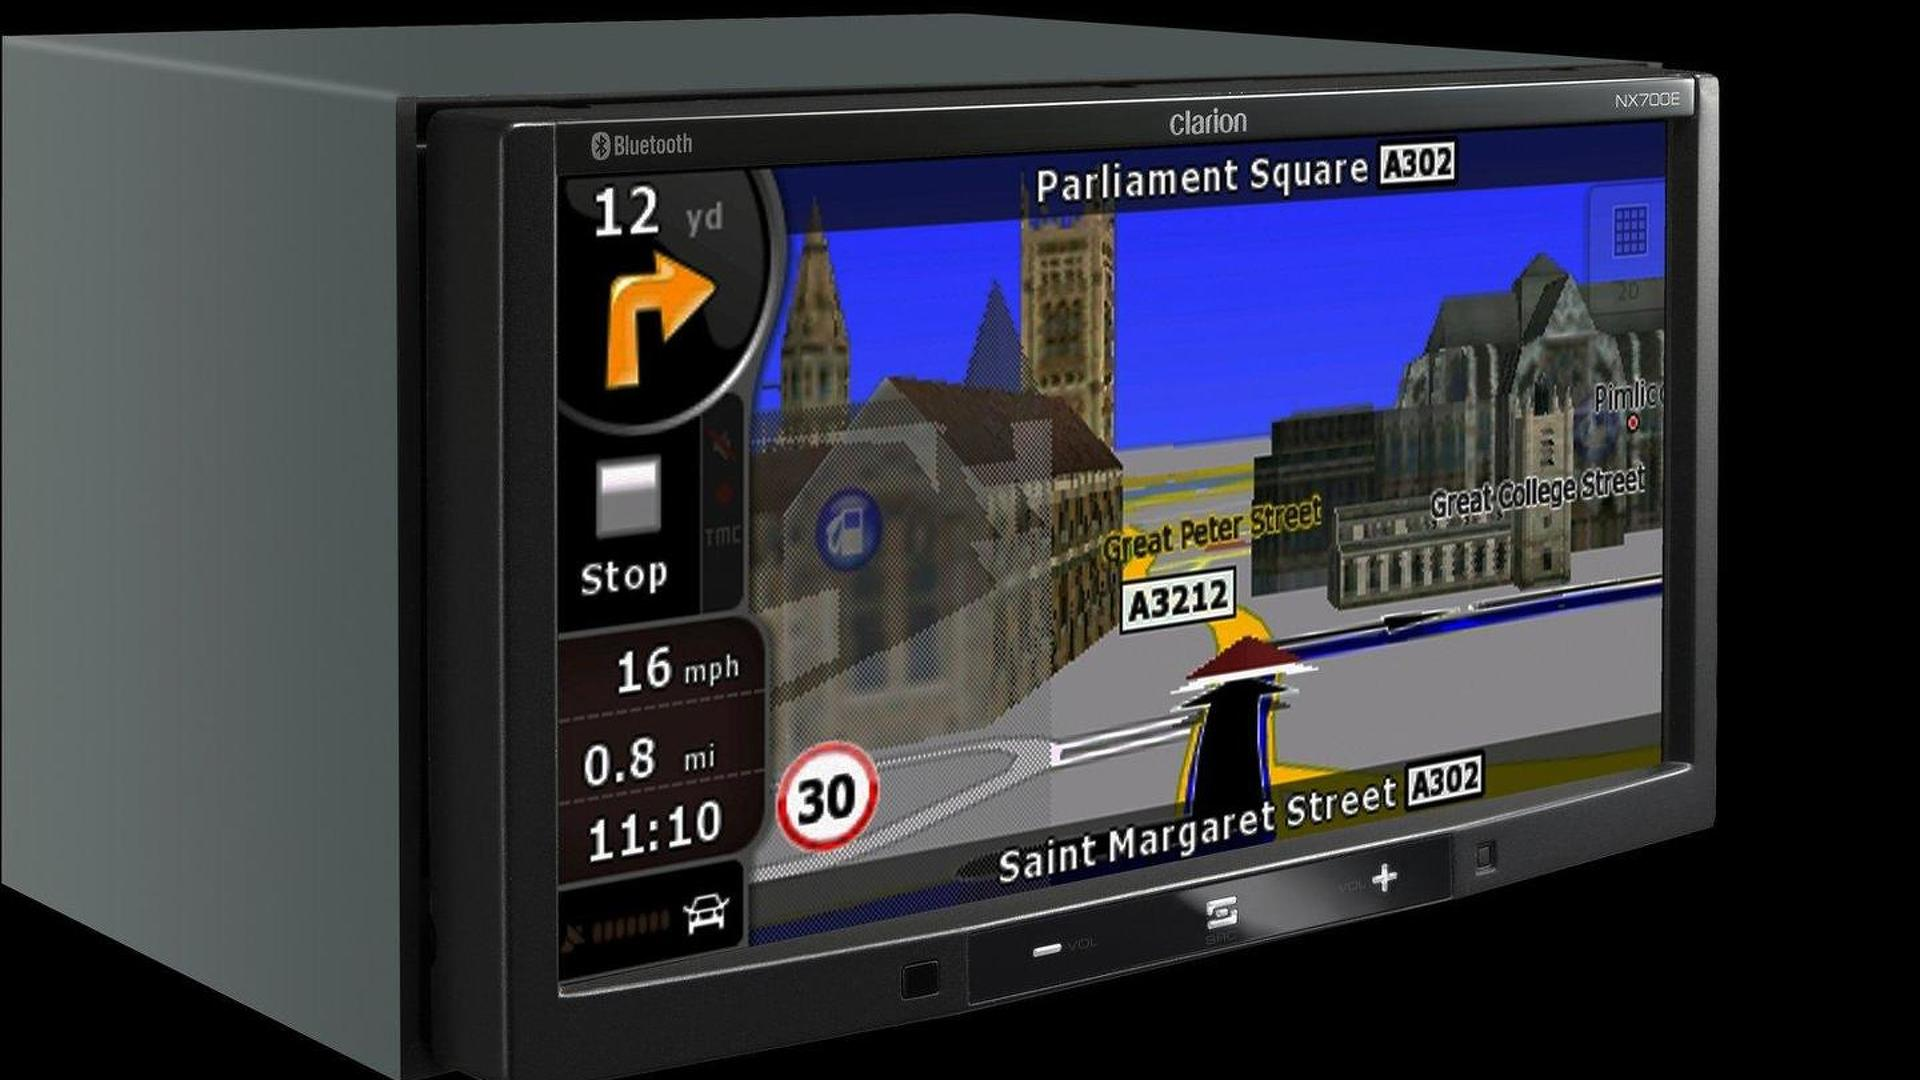 Nokia and Clarion working on next-generation smartphone integrated infotainment car systems